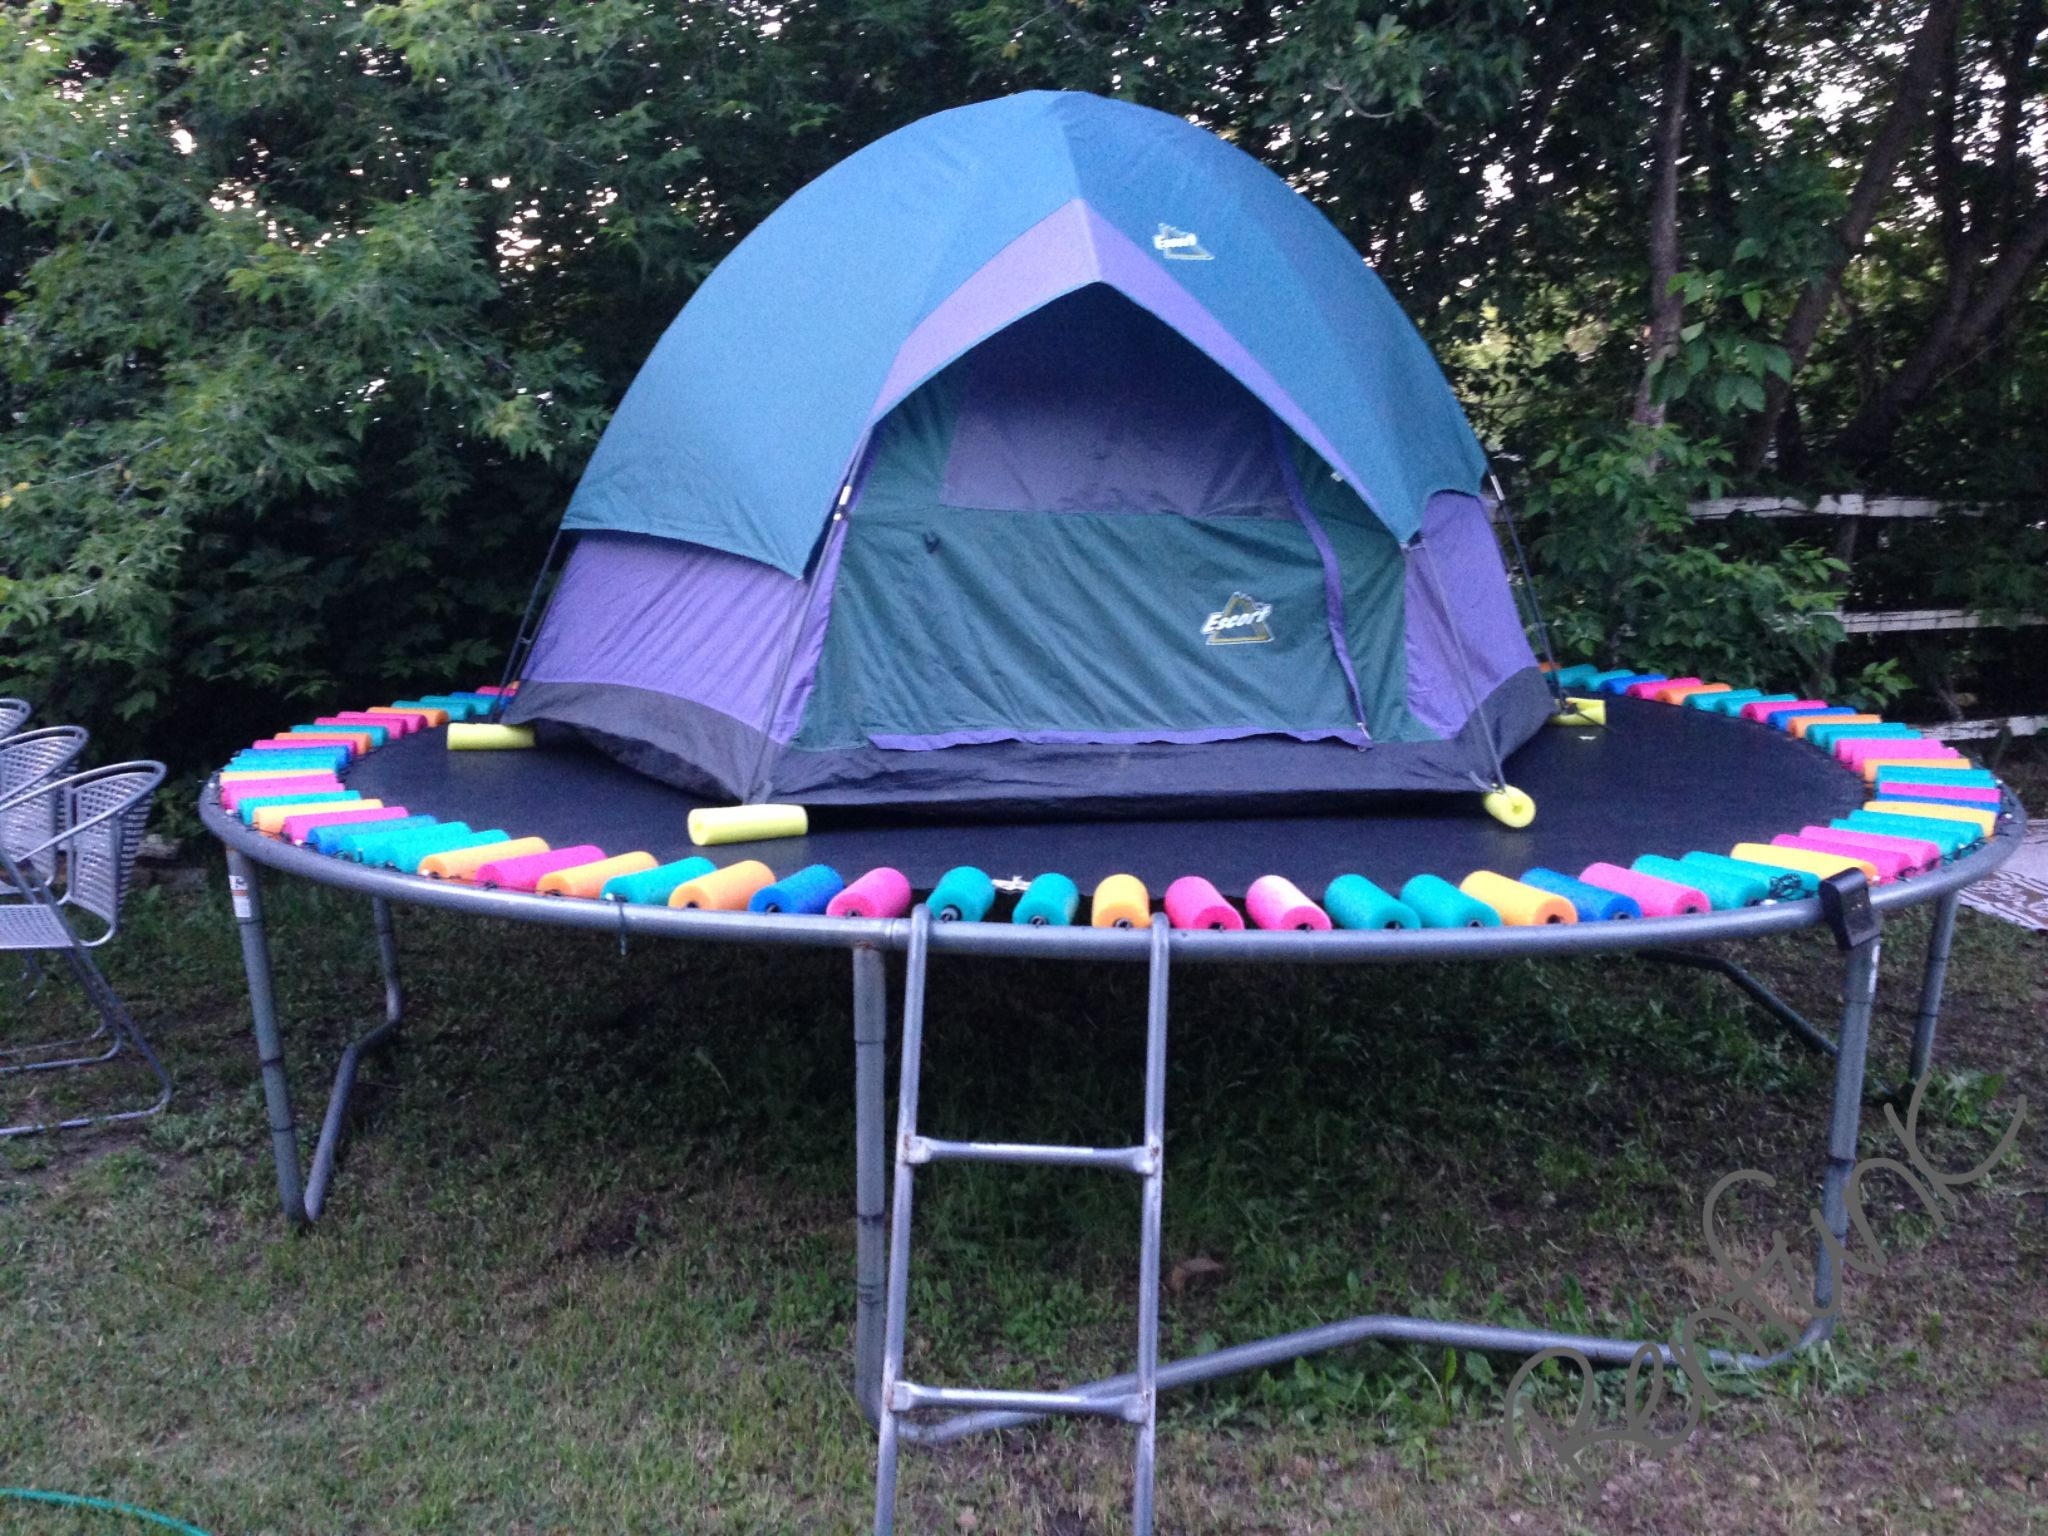 A tent on the trampoline: comfortable, up and away from critters ...